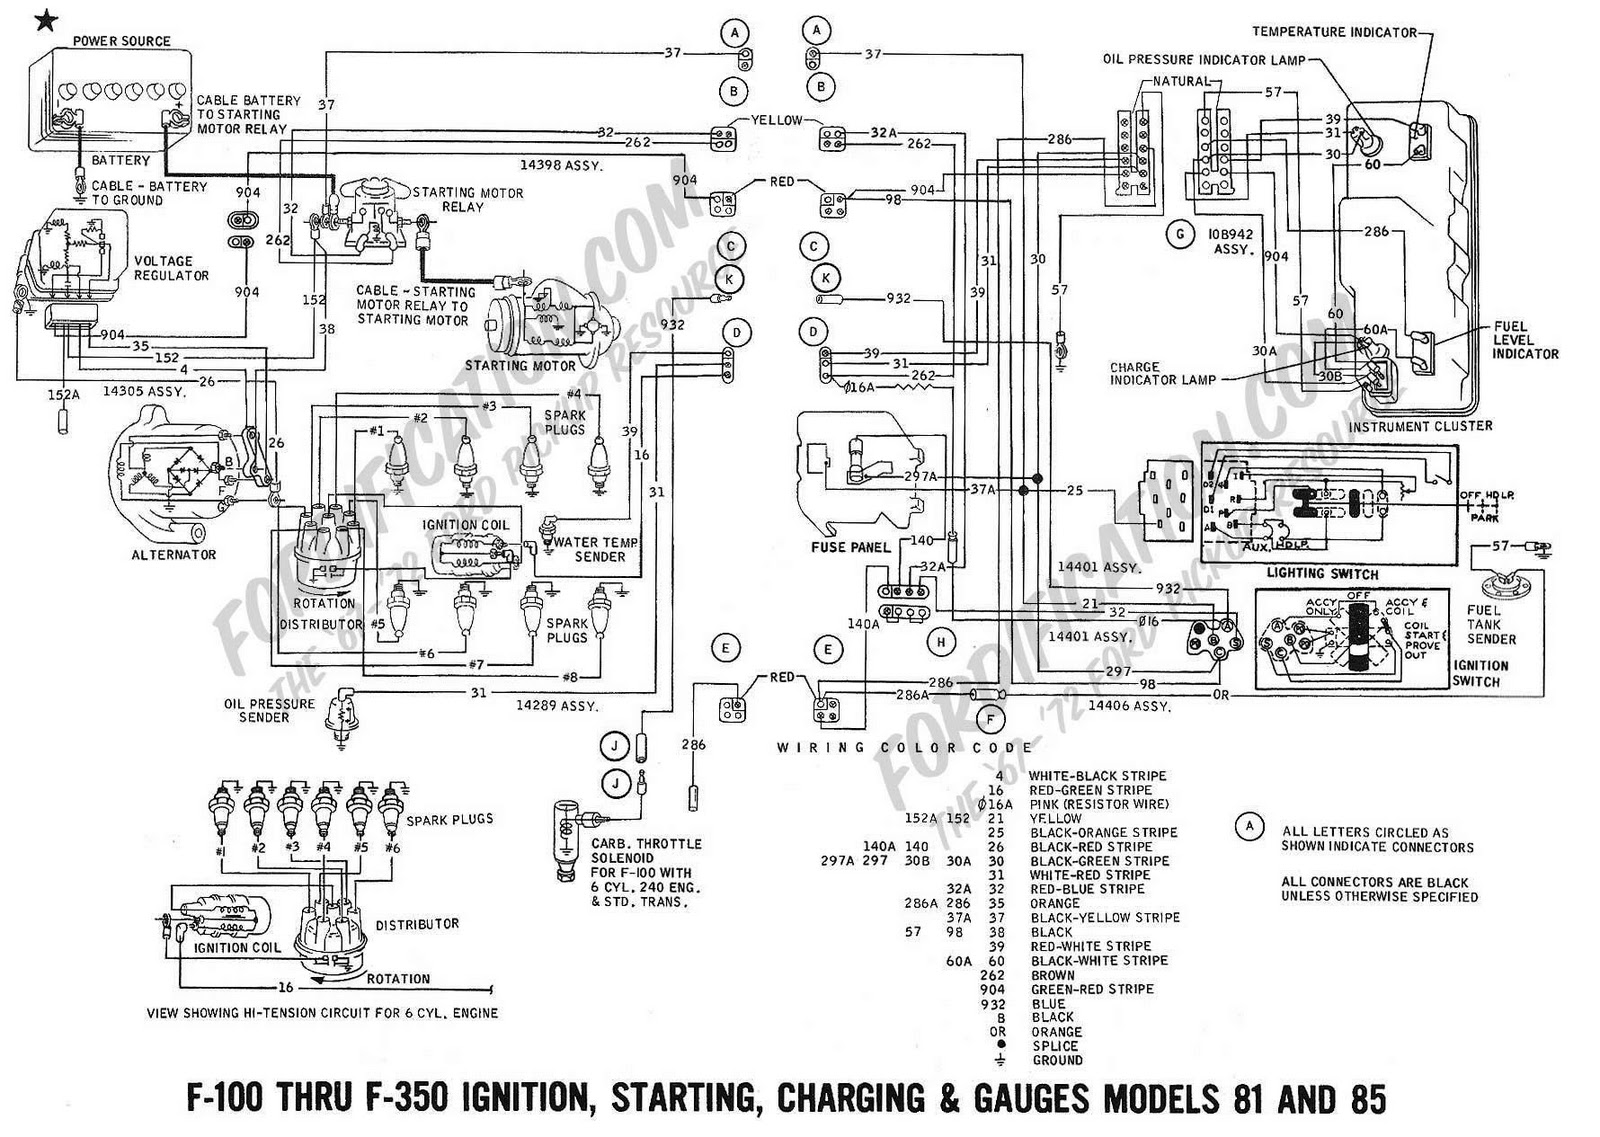 53 Ford F100 Wiring Diagram also Willys Jeep Voltage Regulator Wiring in addition 1965 Plymouth Valiant Wiring Schematic likewise 57 Chevy Pickup Wiring Diagram besides 1984 Toyota Pickup Alternator Wiring Diagram. on 1955 chevy truck voltage regulator wiring diagram